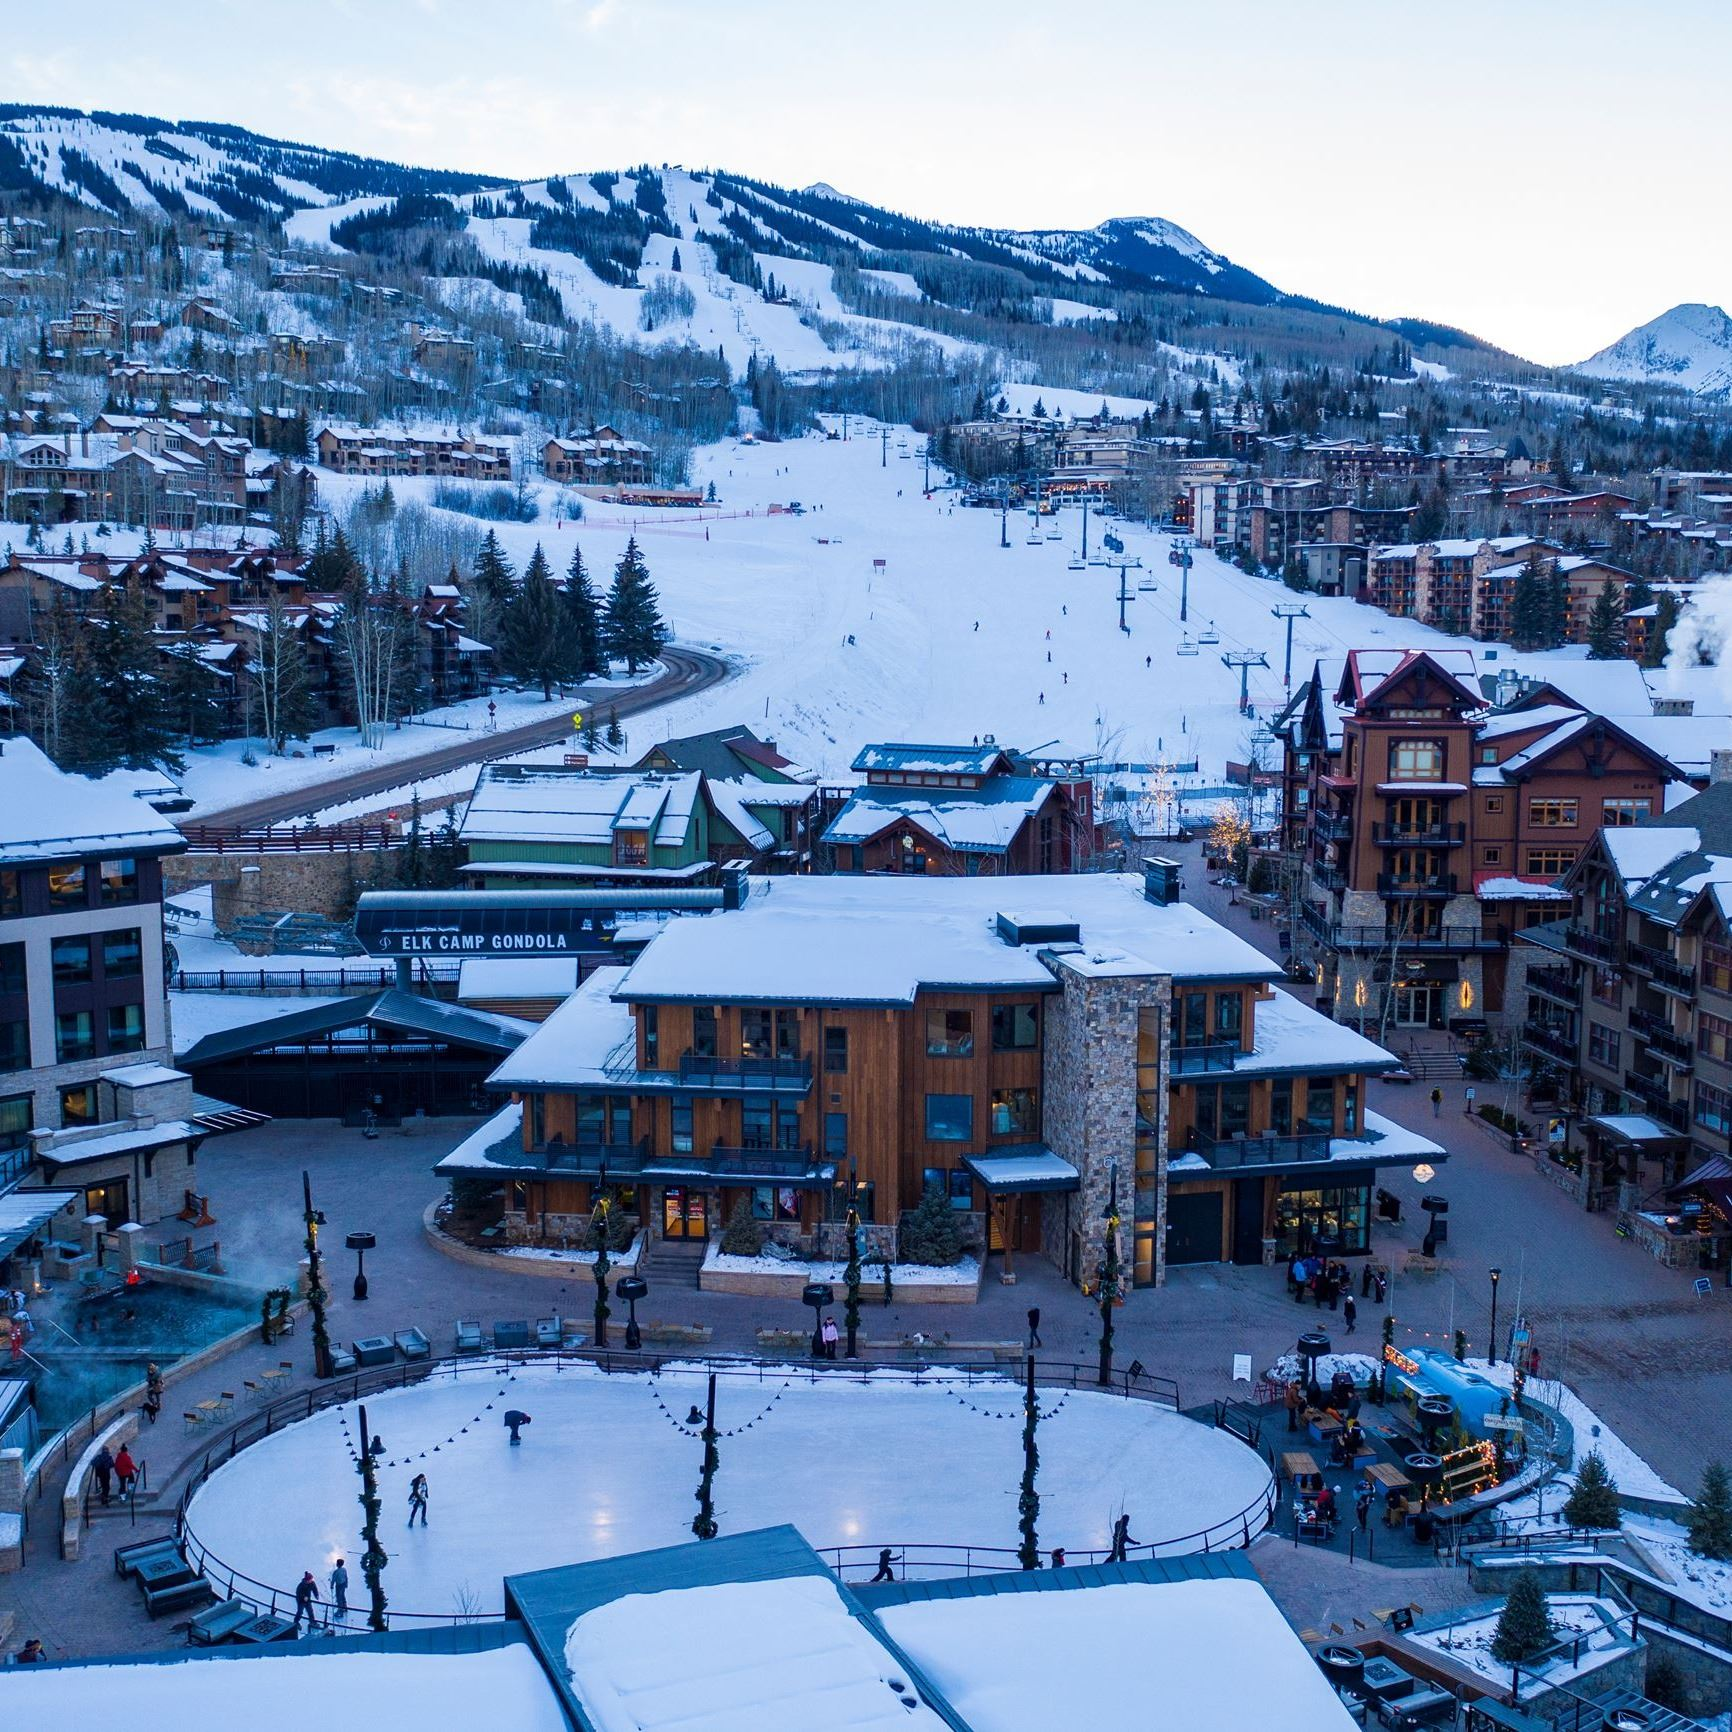 Drone photo looking at snowmass mountain from base village, overlooking ice rink in the winter time